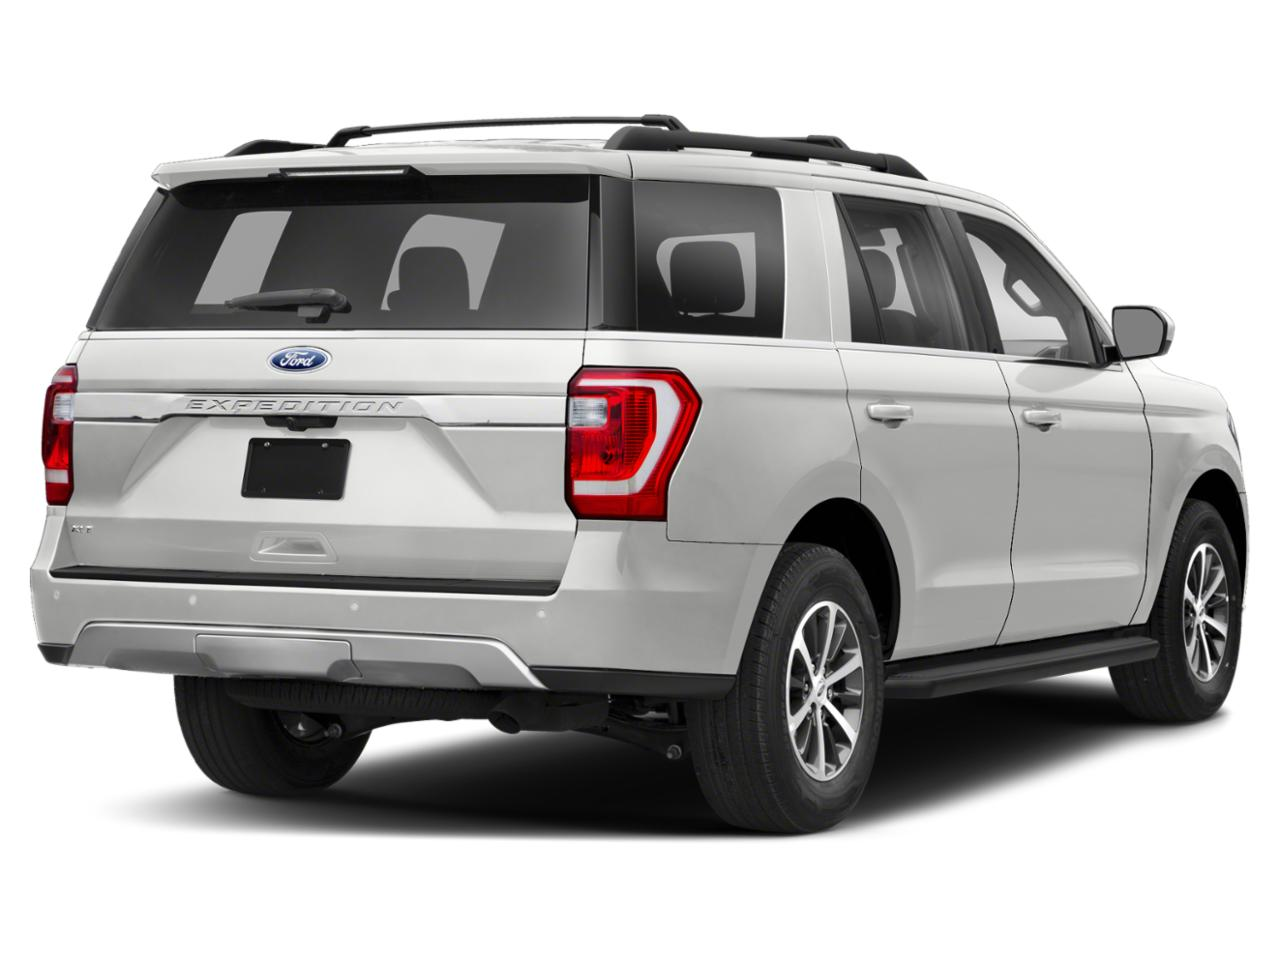 2018 Ford Expedition LIMITED SUV Slide